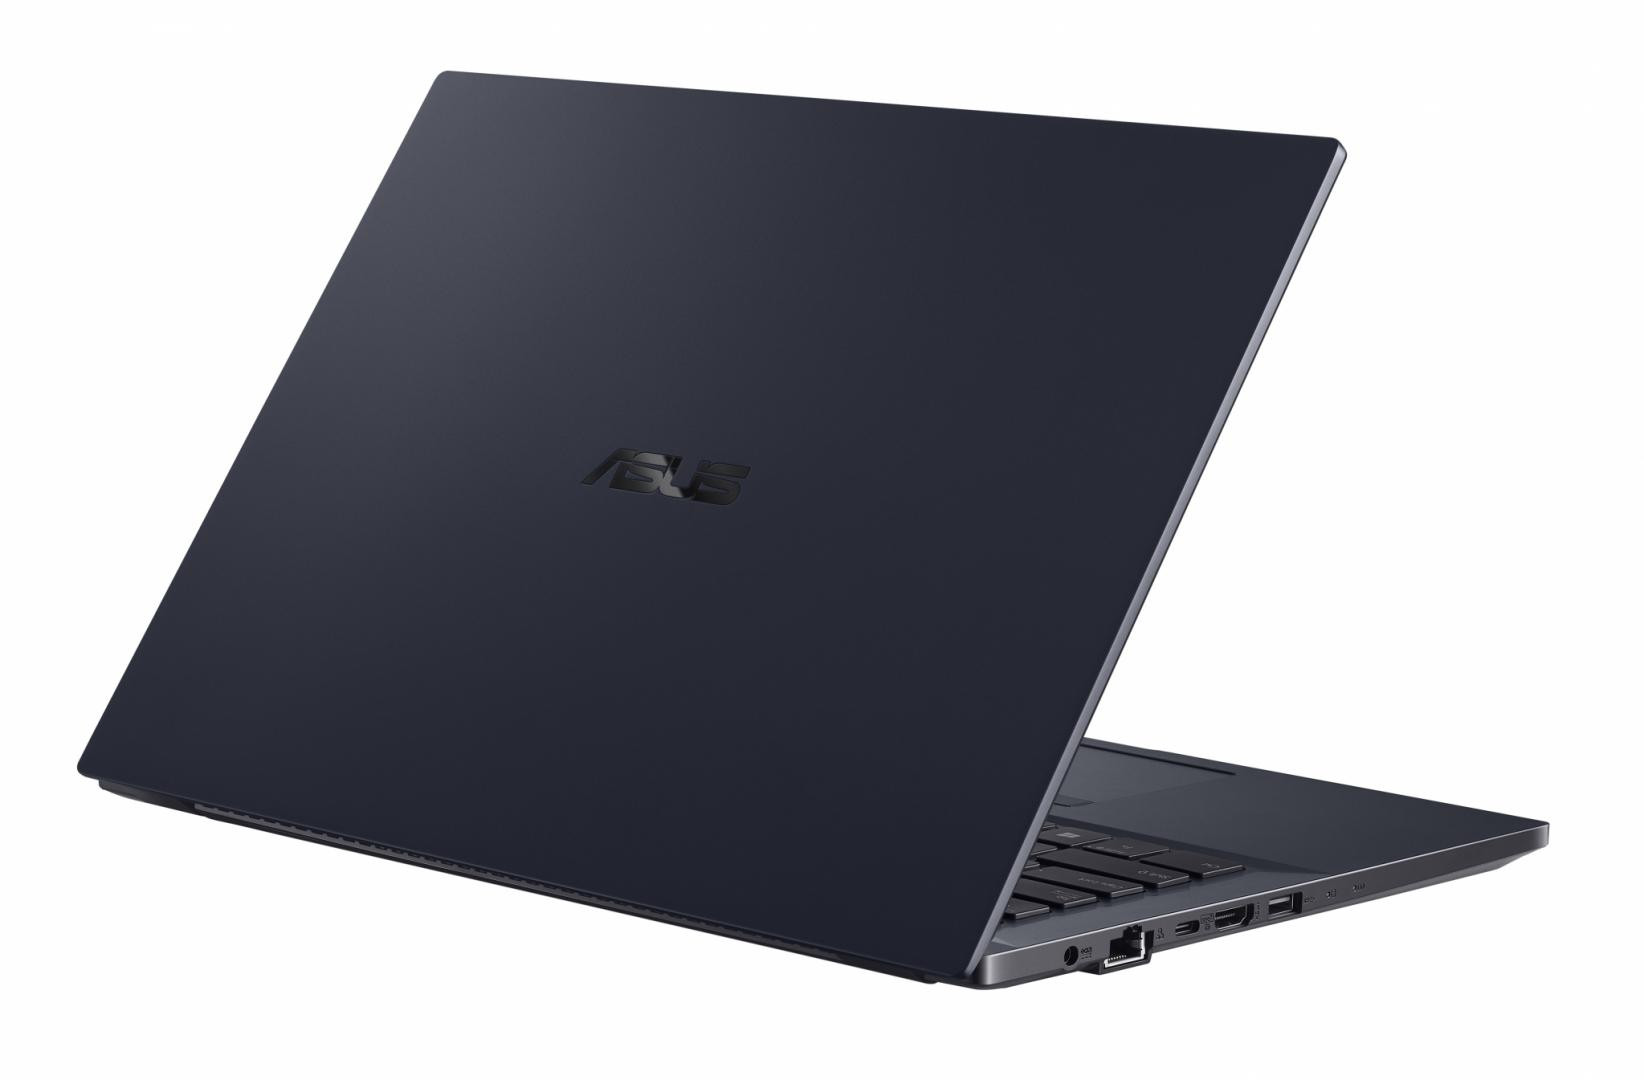 Laptop Business ASUS ExpertBook P2451FA-EK2146, 14.0-inch, FHD (1920 x 1080) 16:9, LCD, Anti-glare display, Intel® Core™ i5-10210U Processor 1.6 GHz (6M Cache, up to 4.2 GHz, 4 cores), Intel® UHD Graphics, 16GB DDR4 SO-DIMM, 512GB M.2 NVMe™ PCIe® 3.0 SSD, Wi-Fi 5(802.11ac)+Bluetooth 4.2 (Dual band) - imaginea 4